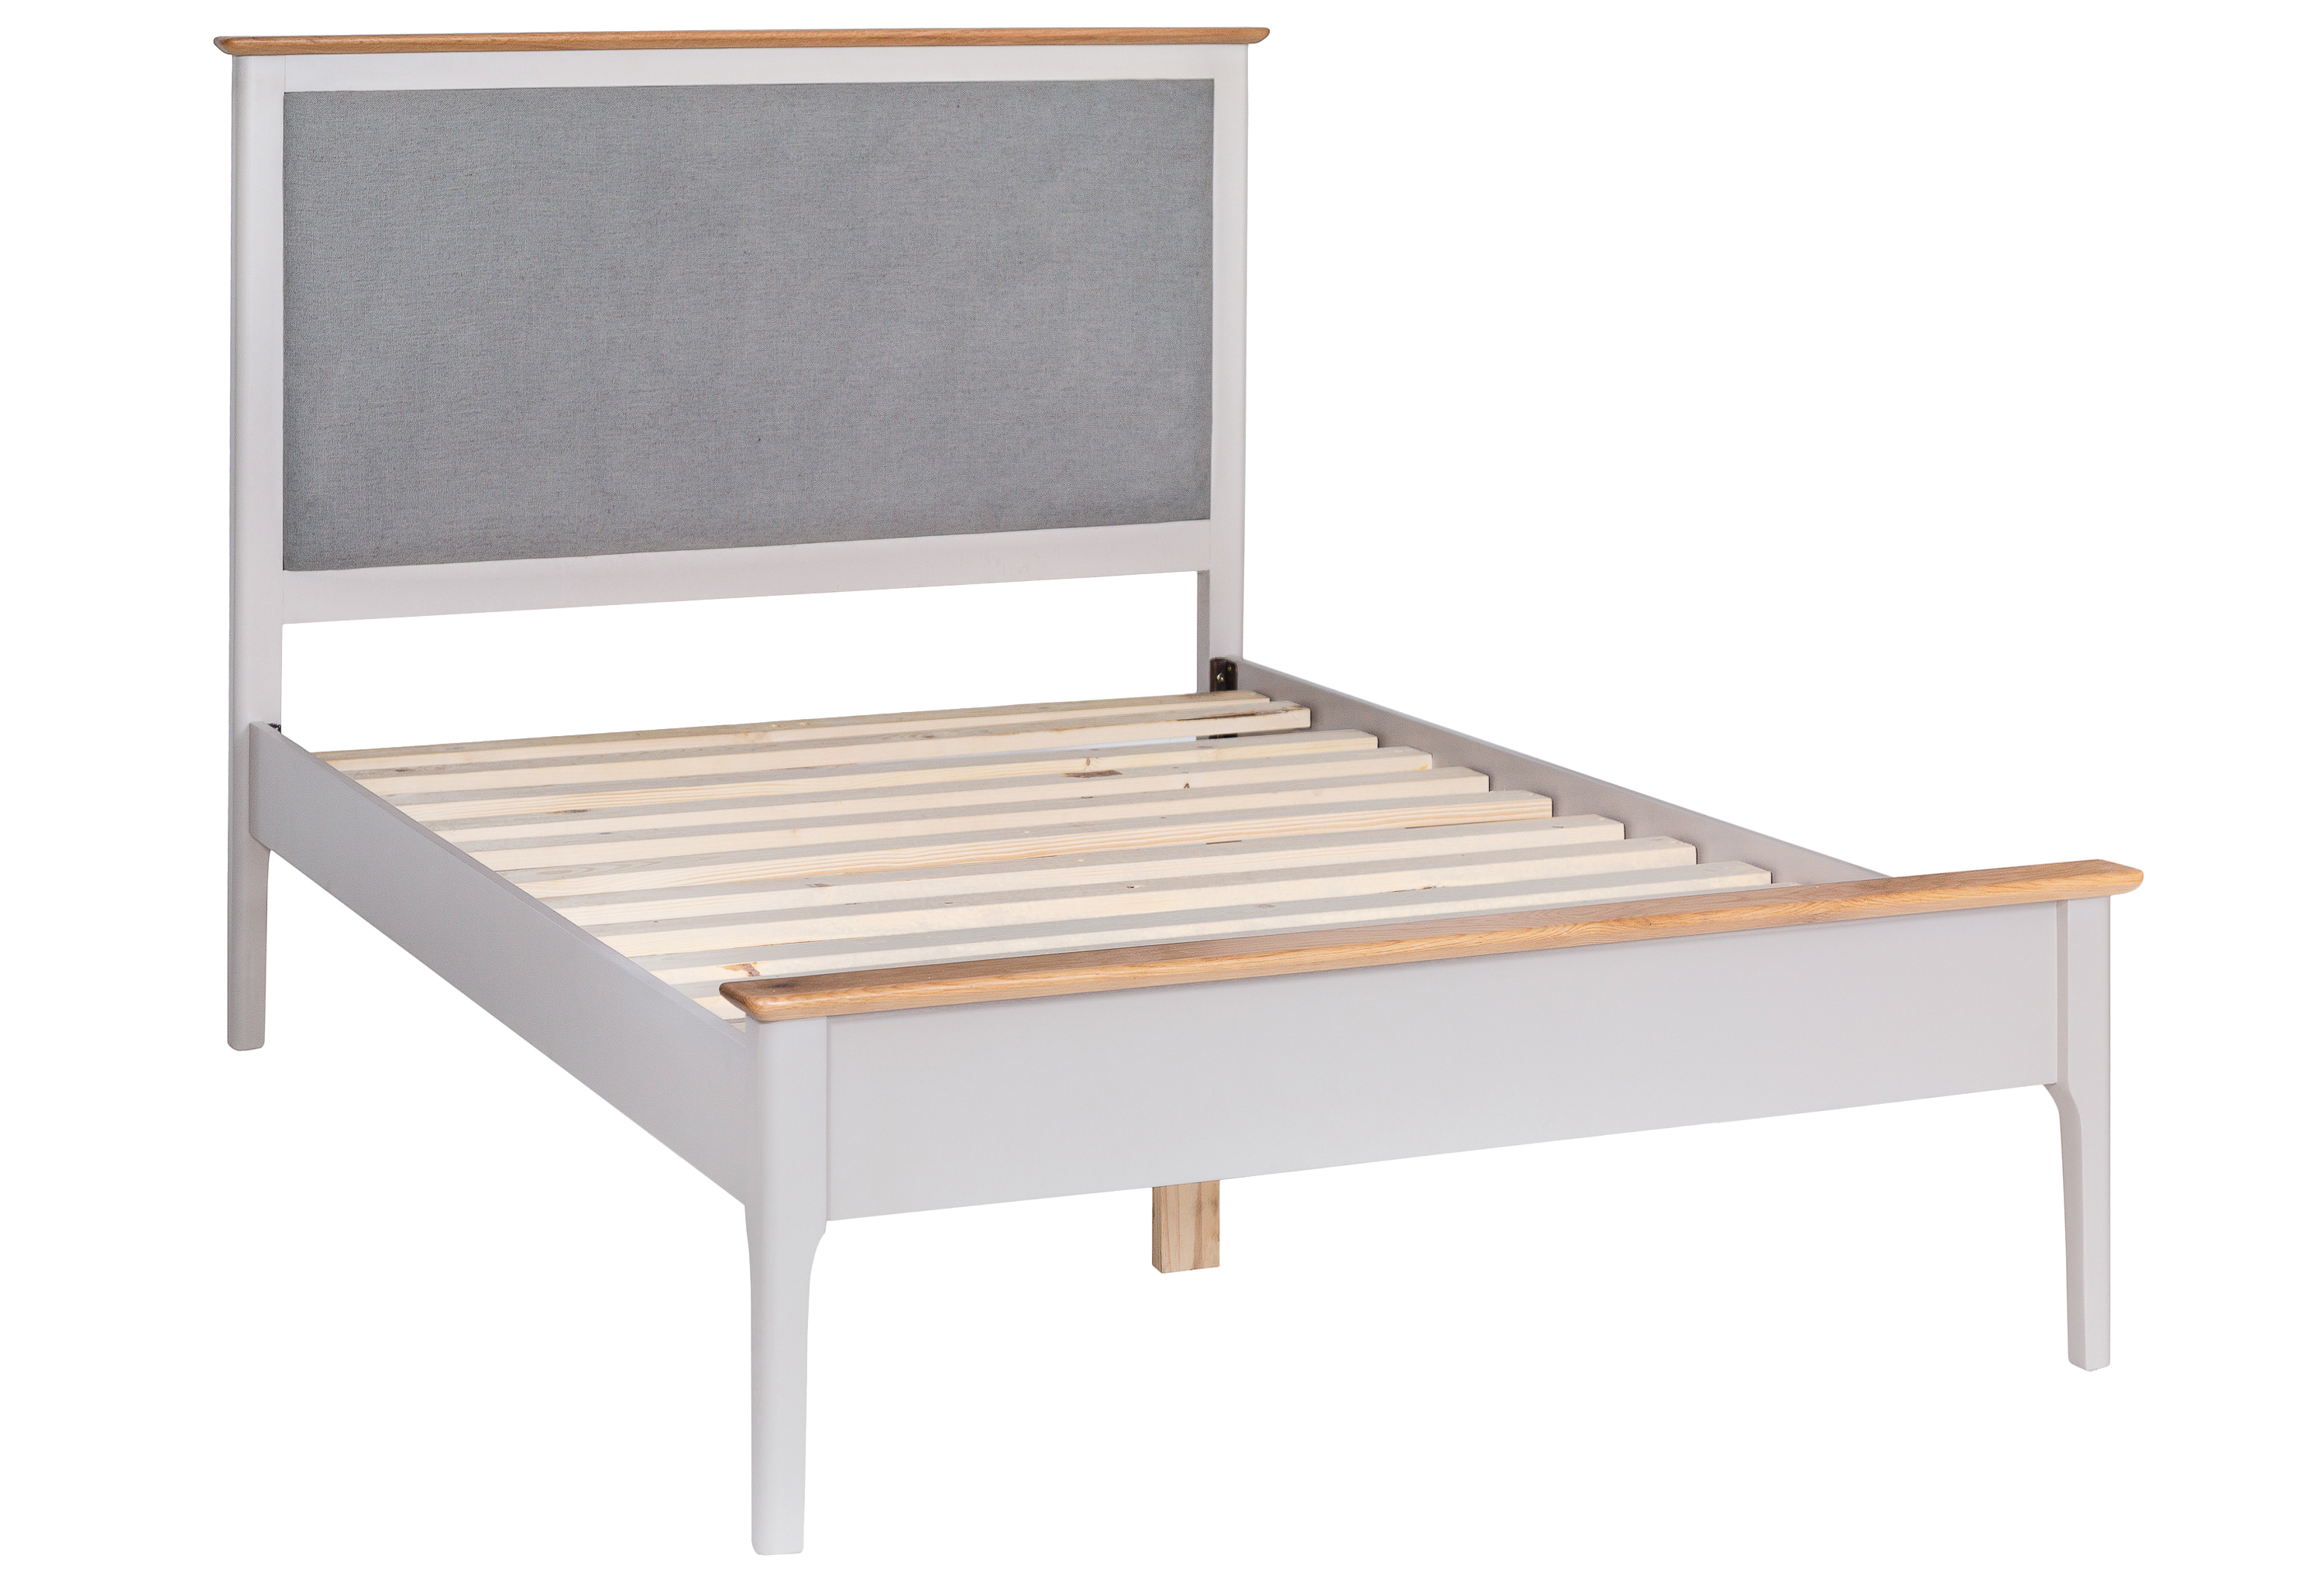 Oisin Bed Frame